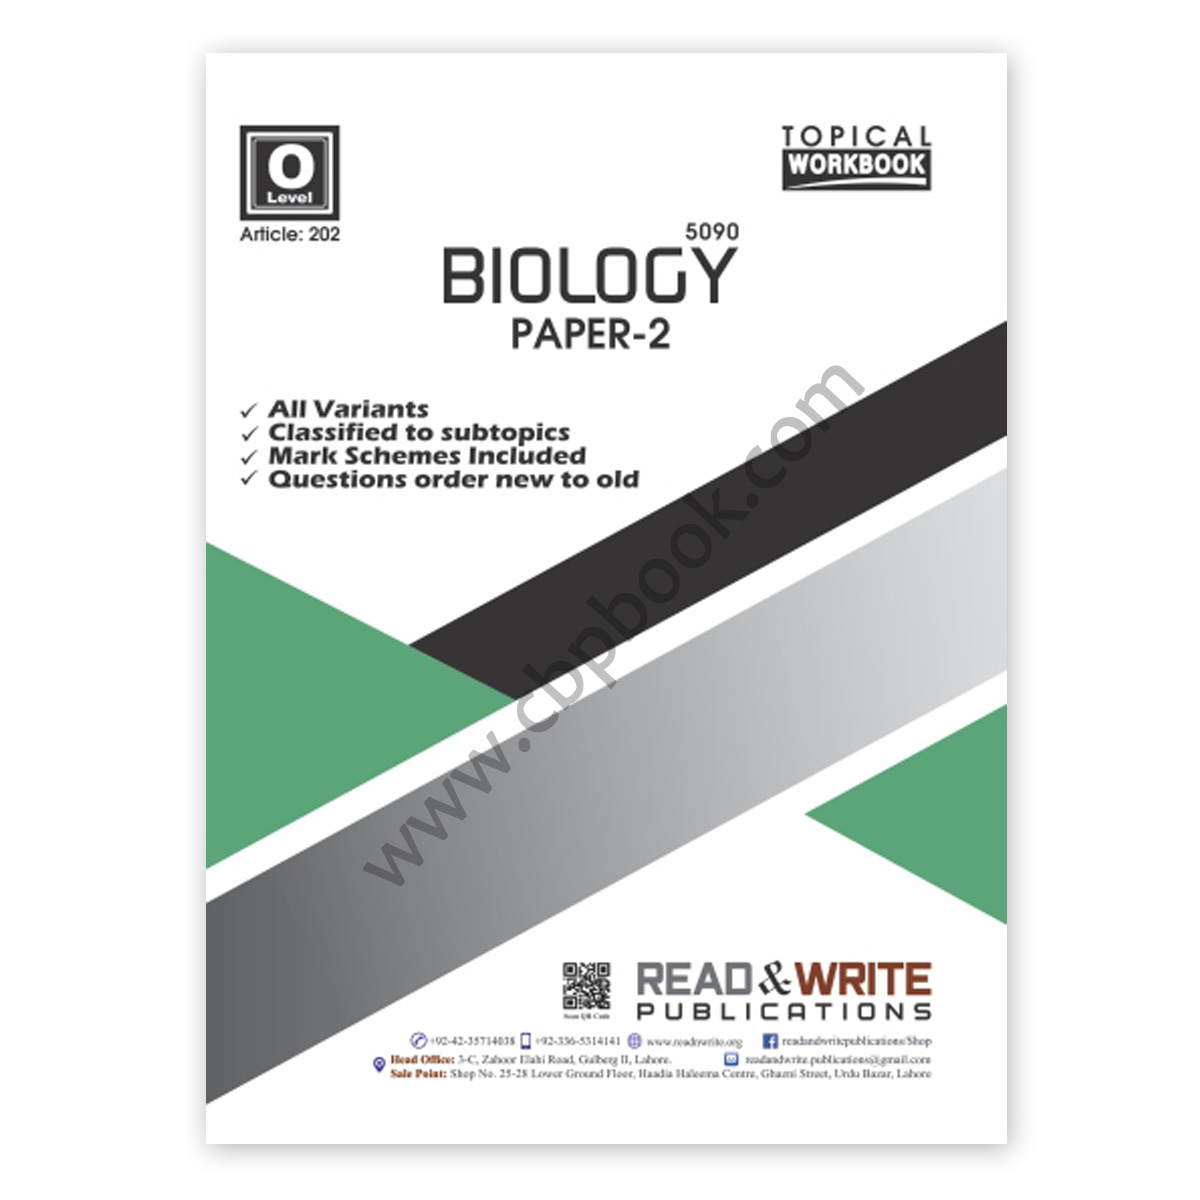 o level biology paper 2 topical workbook (art#202) - read & write